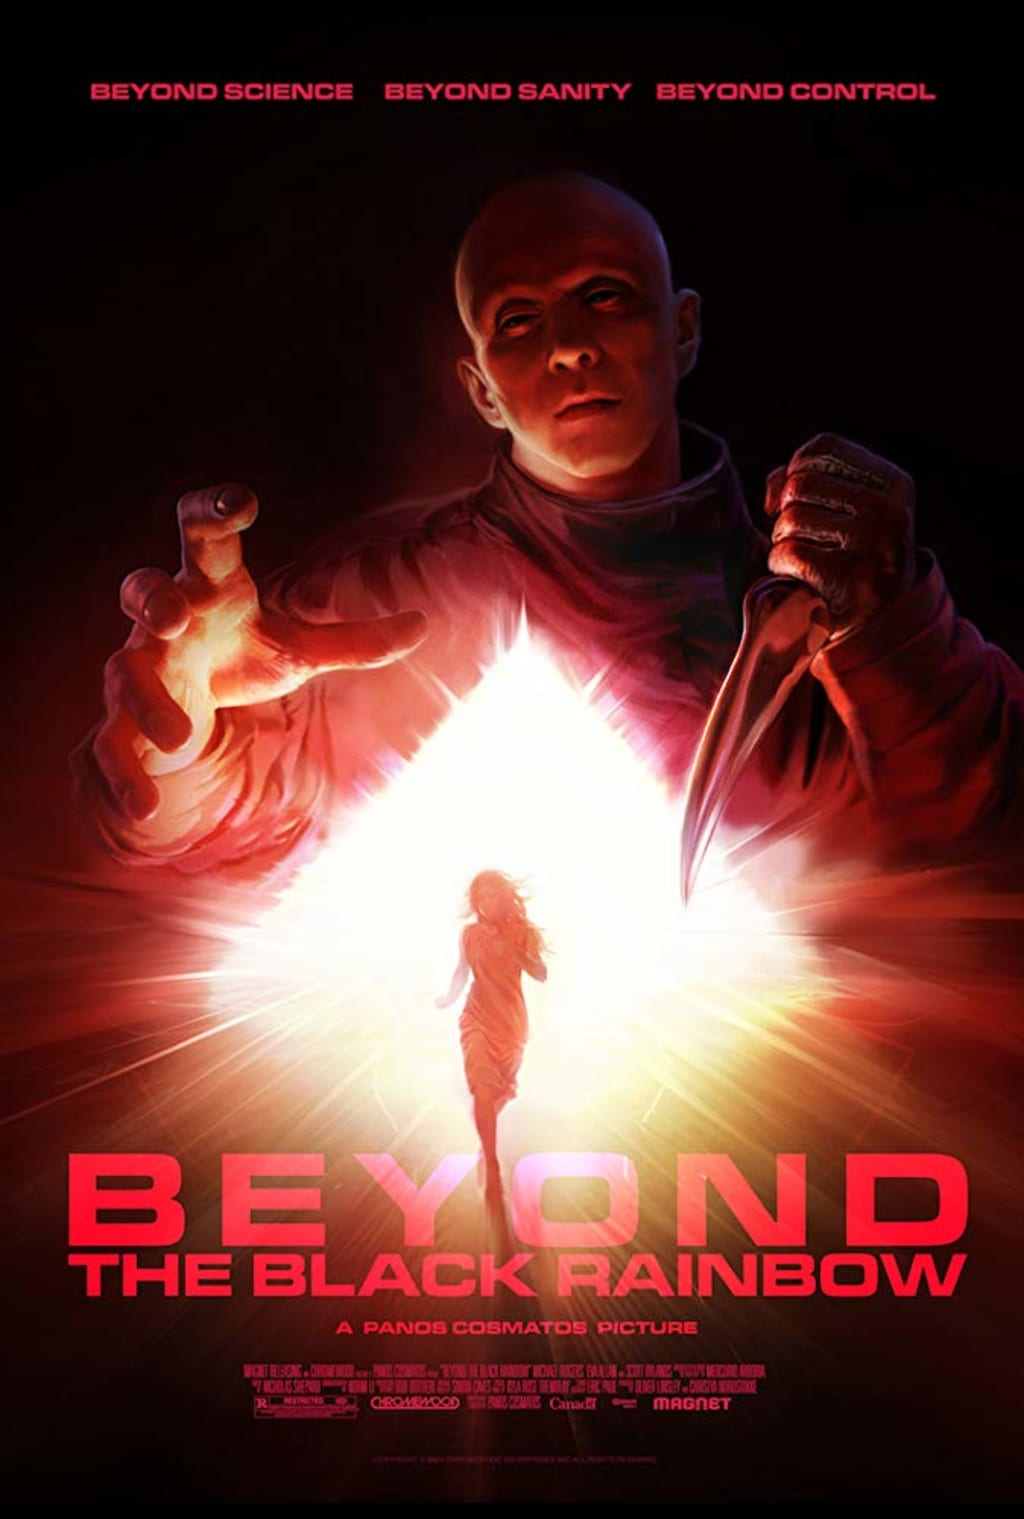 Reed Alexander's Horror Review of 'Beyond The Black Rainbow' (2010)